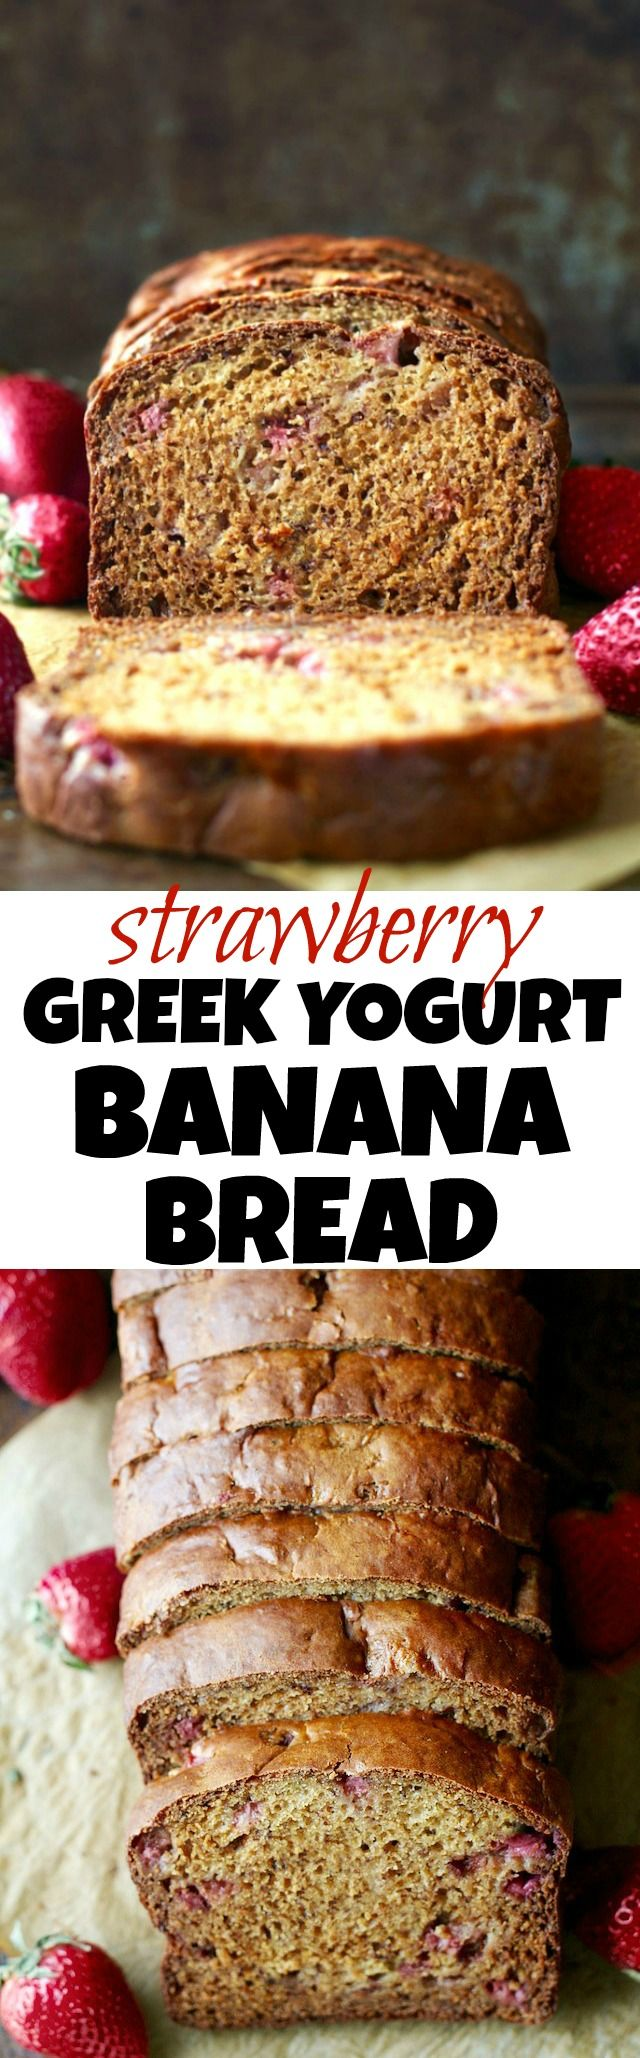 Strawberry Greek Yogurt Banana Bread | Recipe | To tell ...